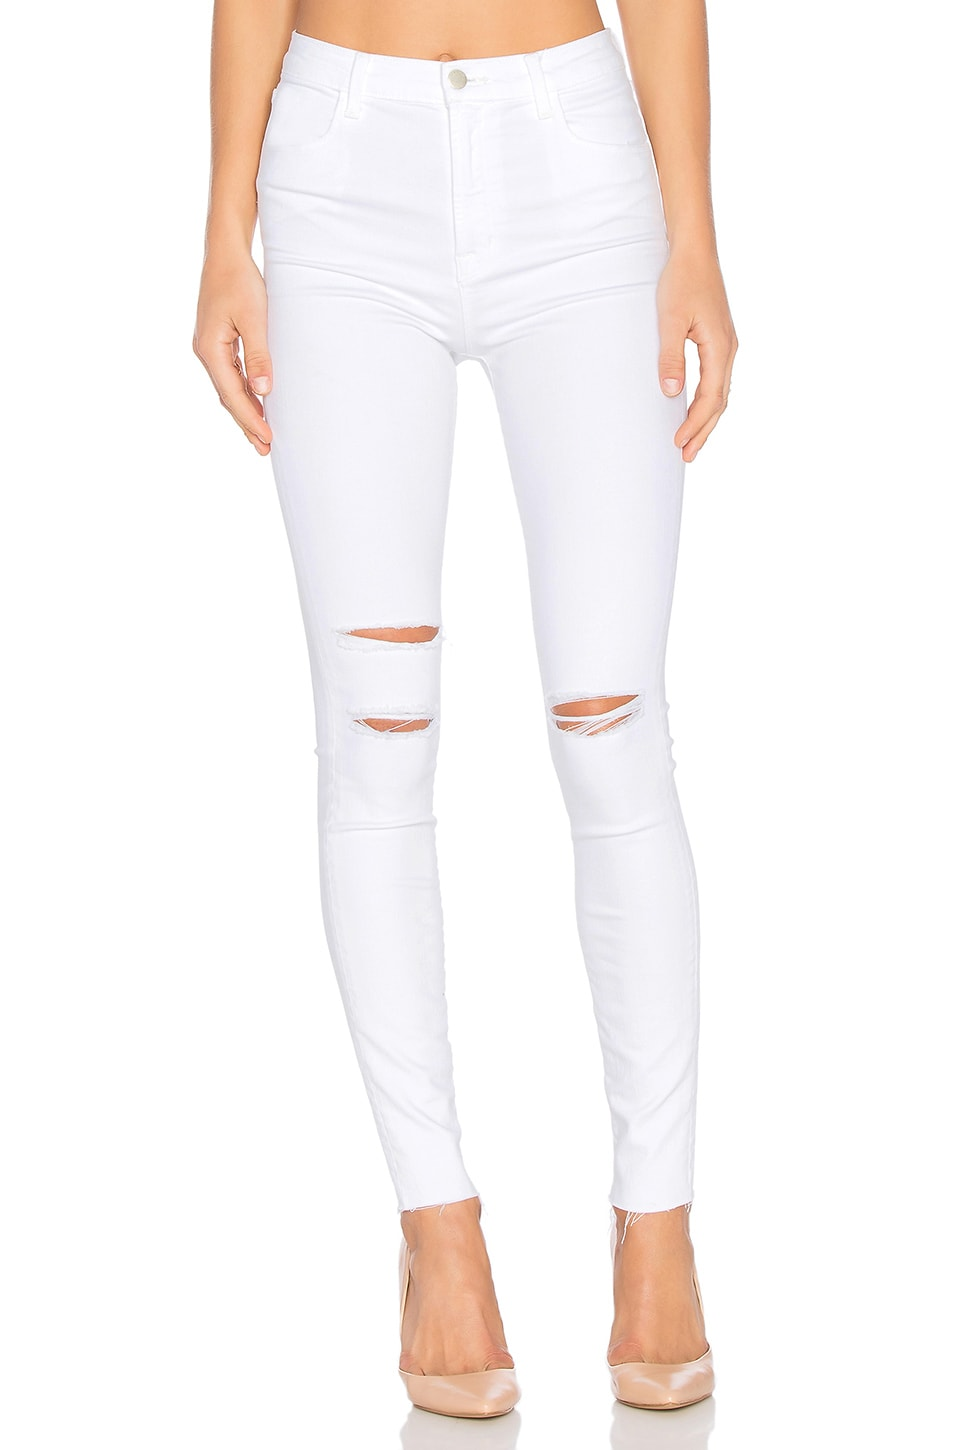 J Brand Maria Super High Rise Skinny in White Mercy